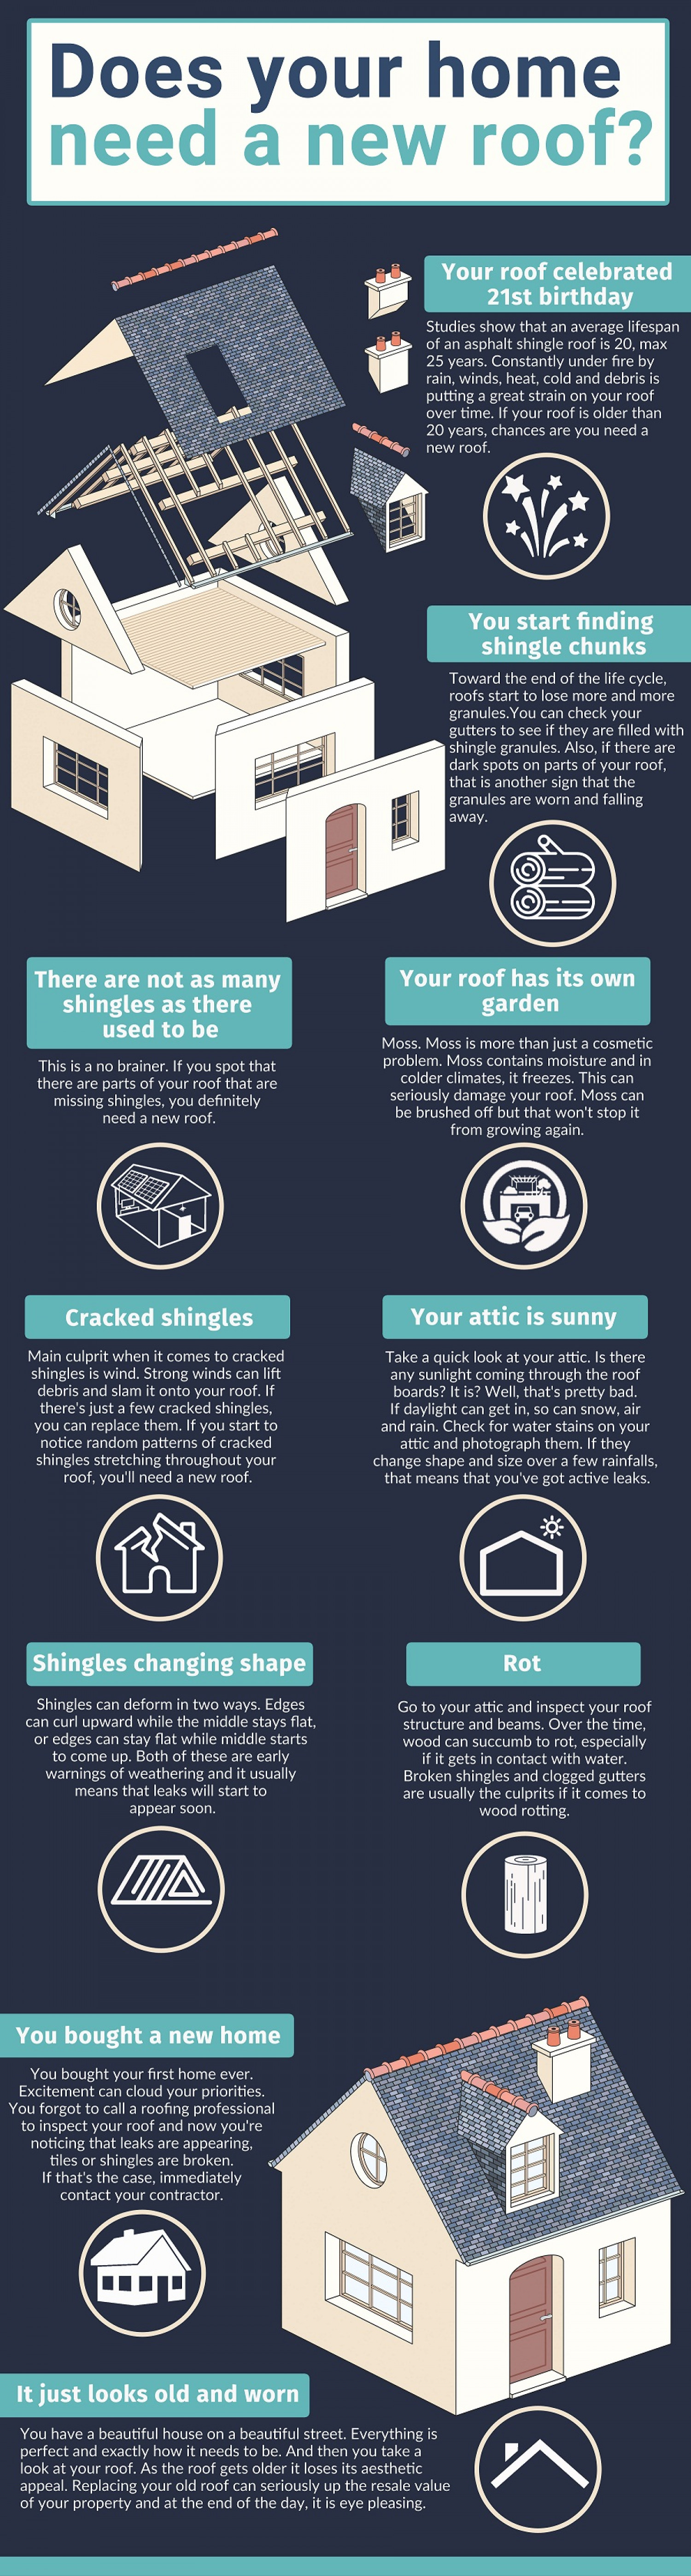 Does your home need a new roof? Infographic